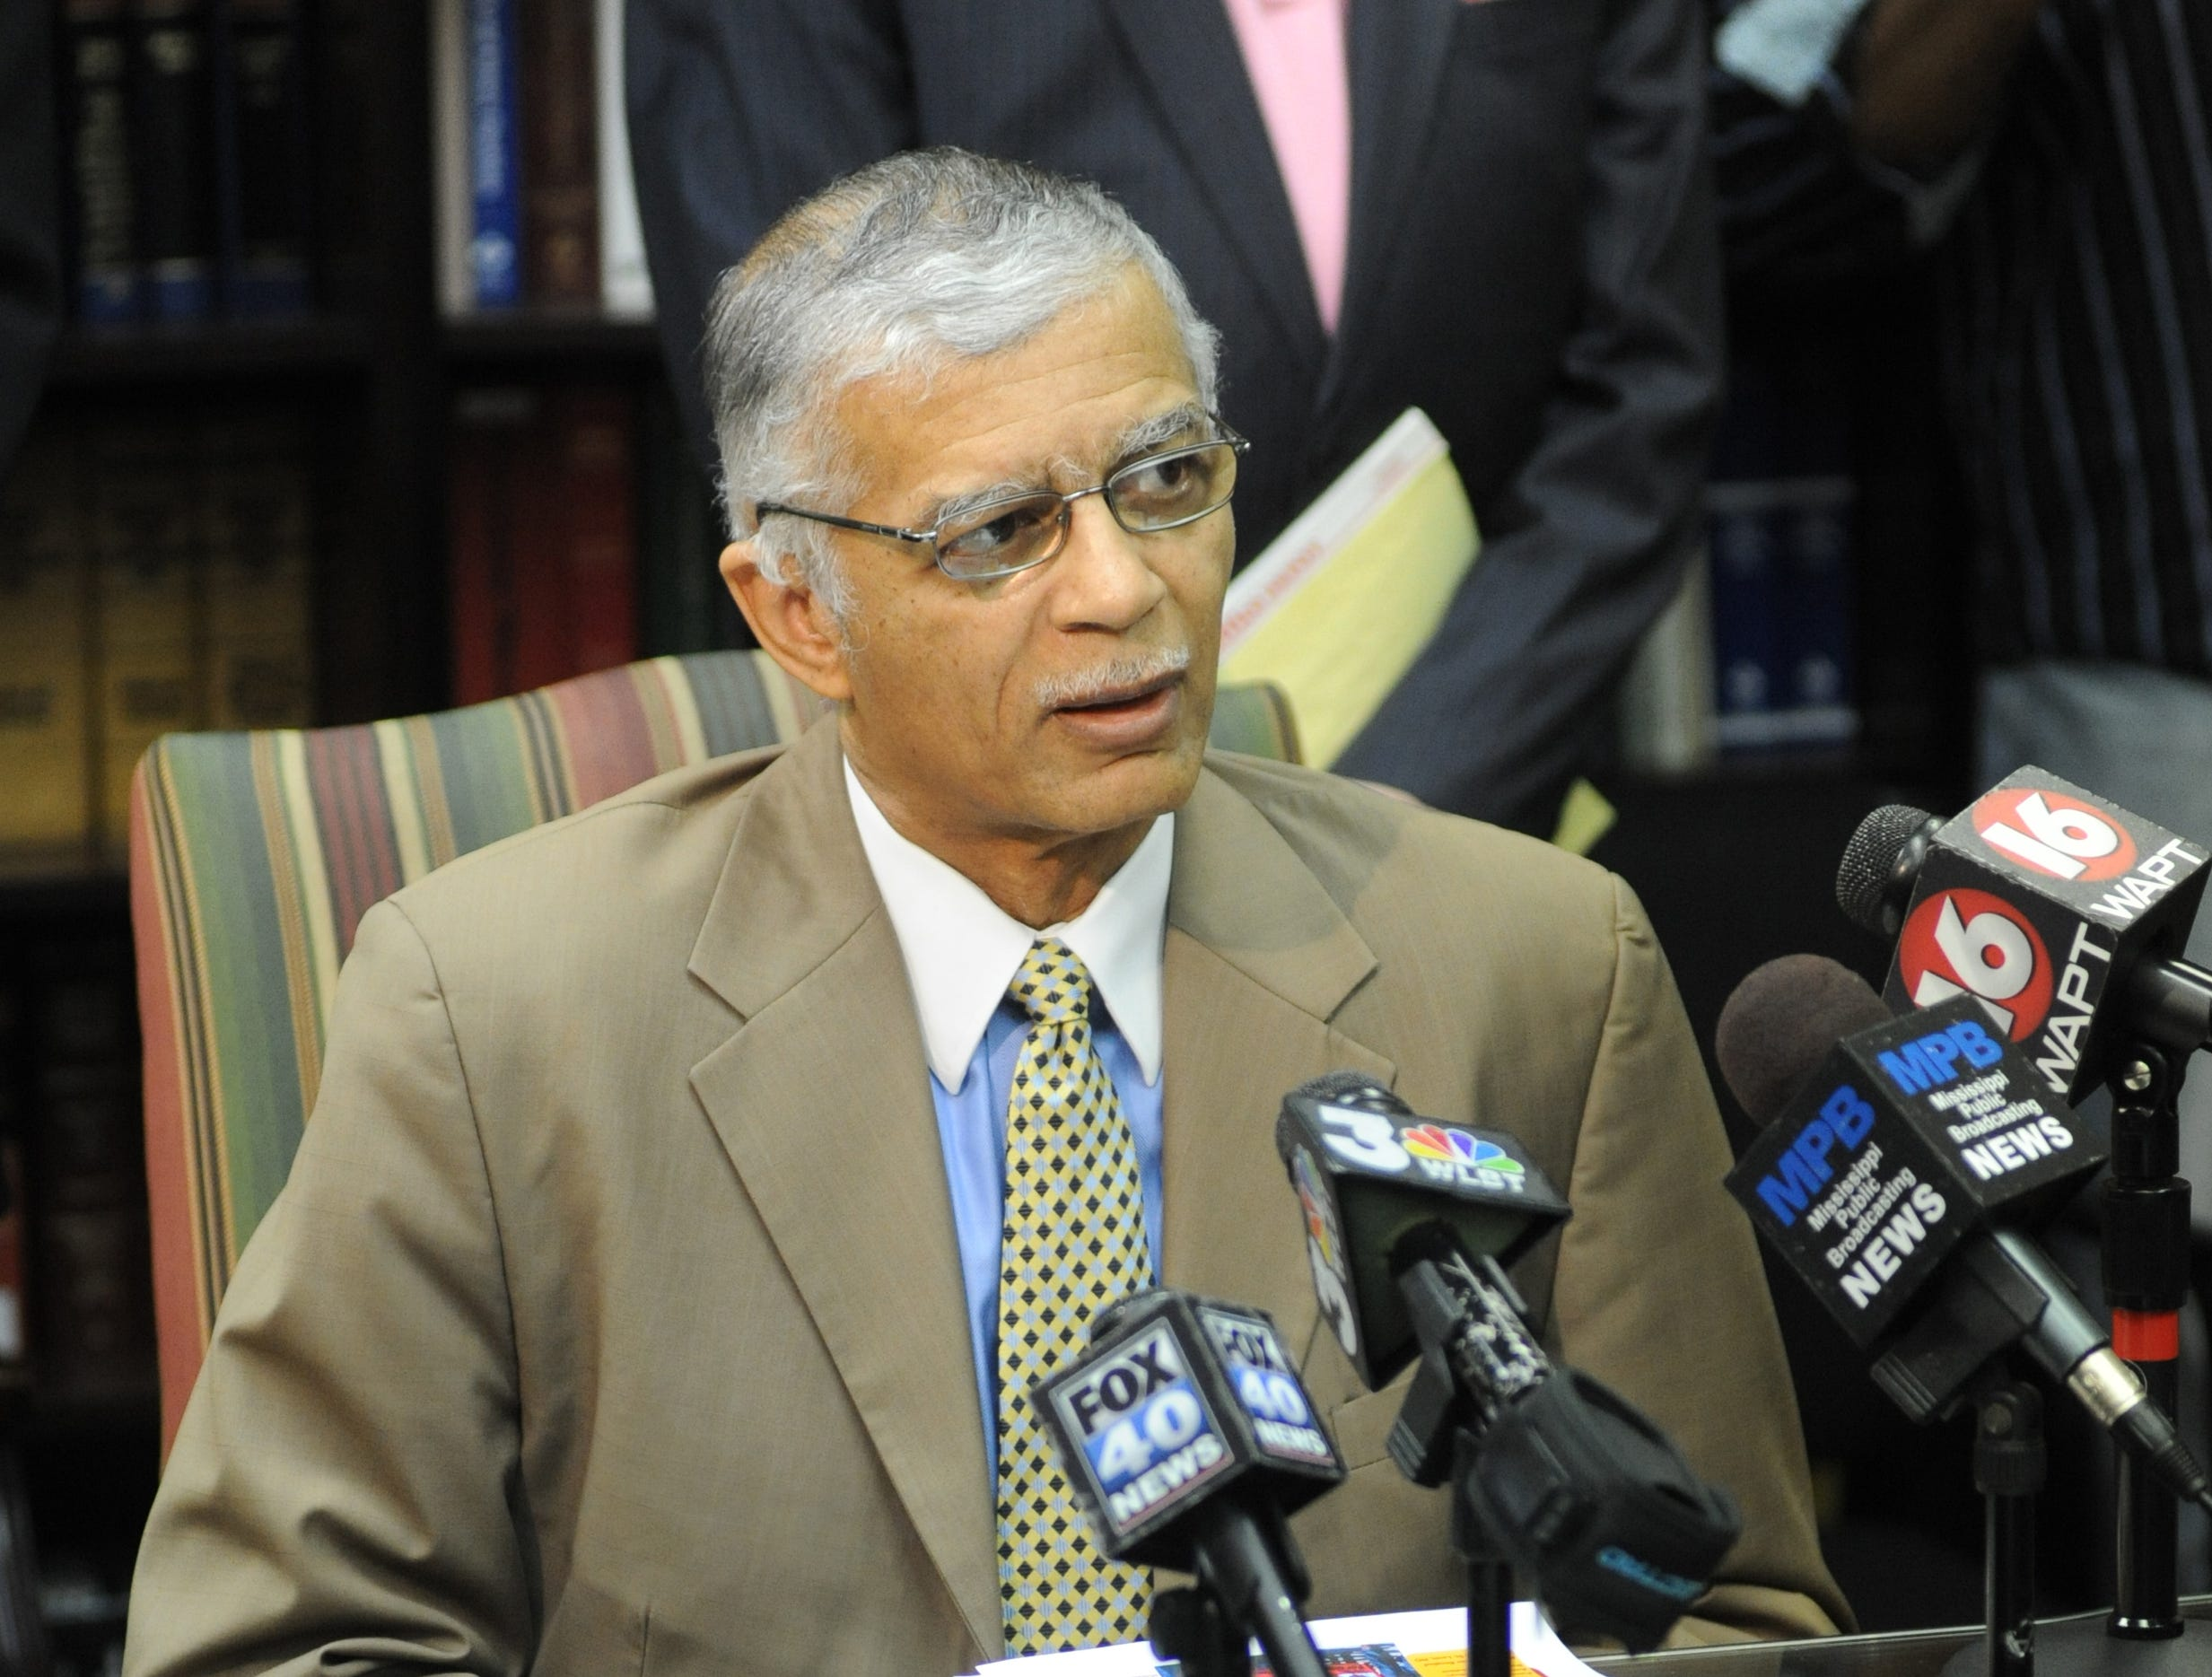 In the wake of pardons handed out by former Gov. Haley Barbour before leaving office, attorney Chokwe Lumumba continues to seek pardons for Jamie and Gladys Scott.